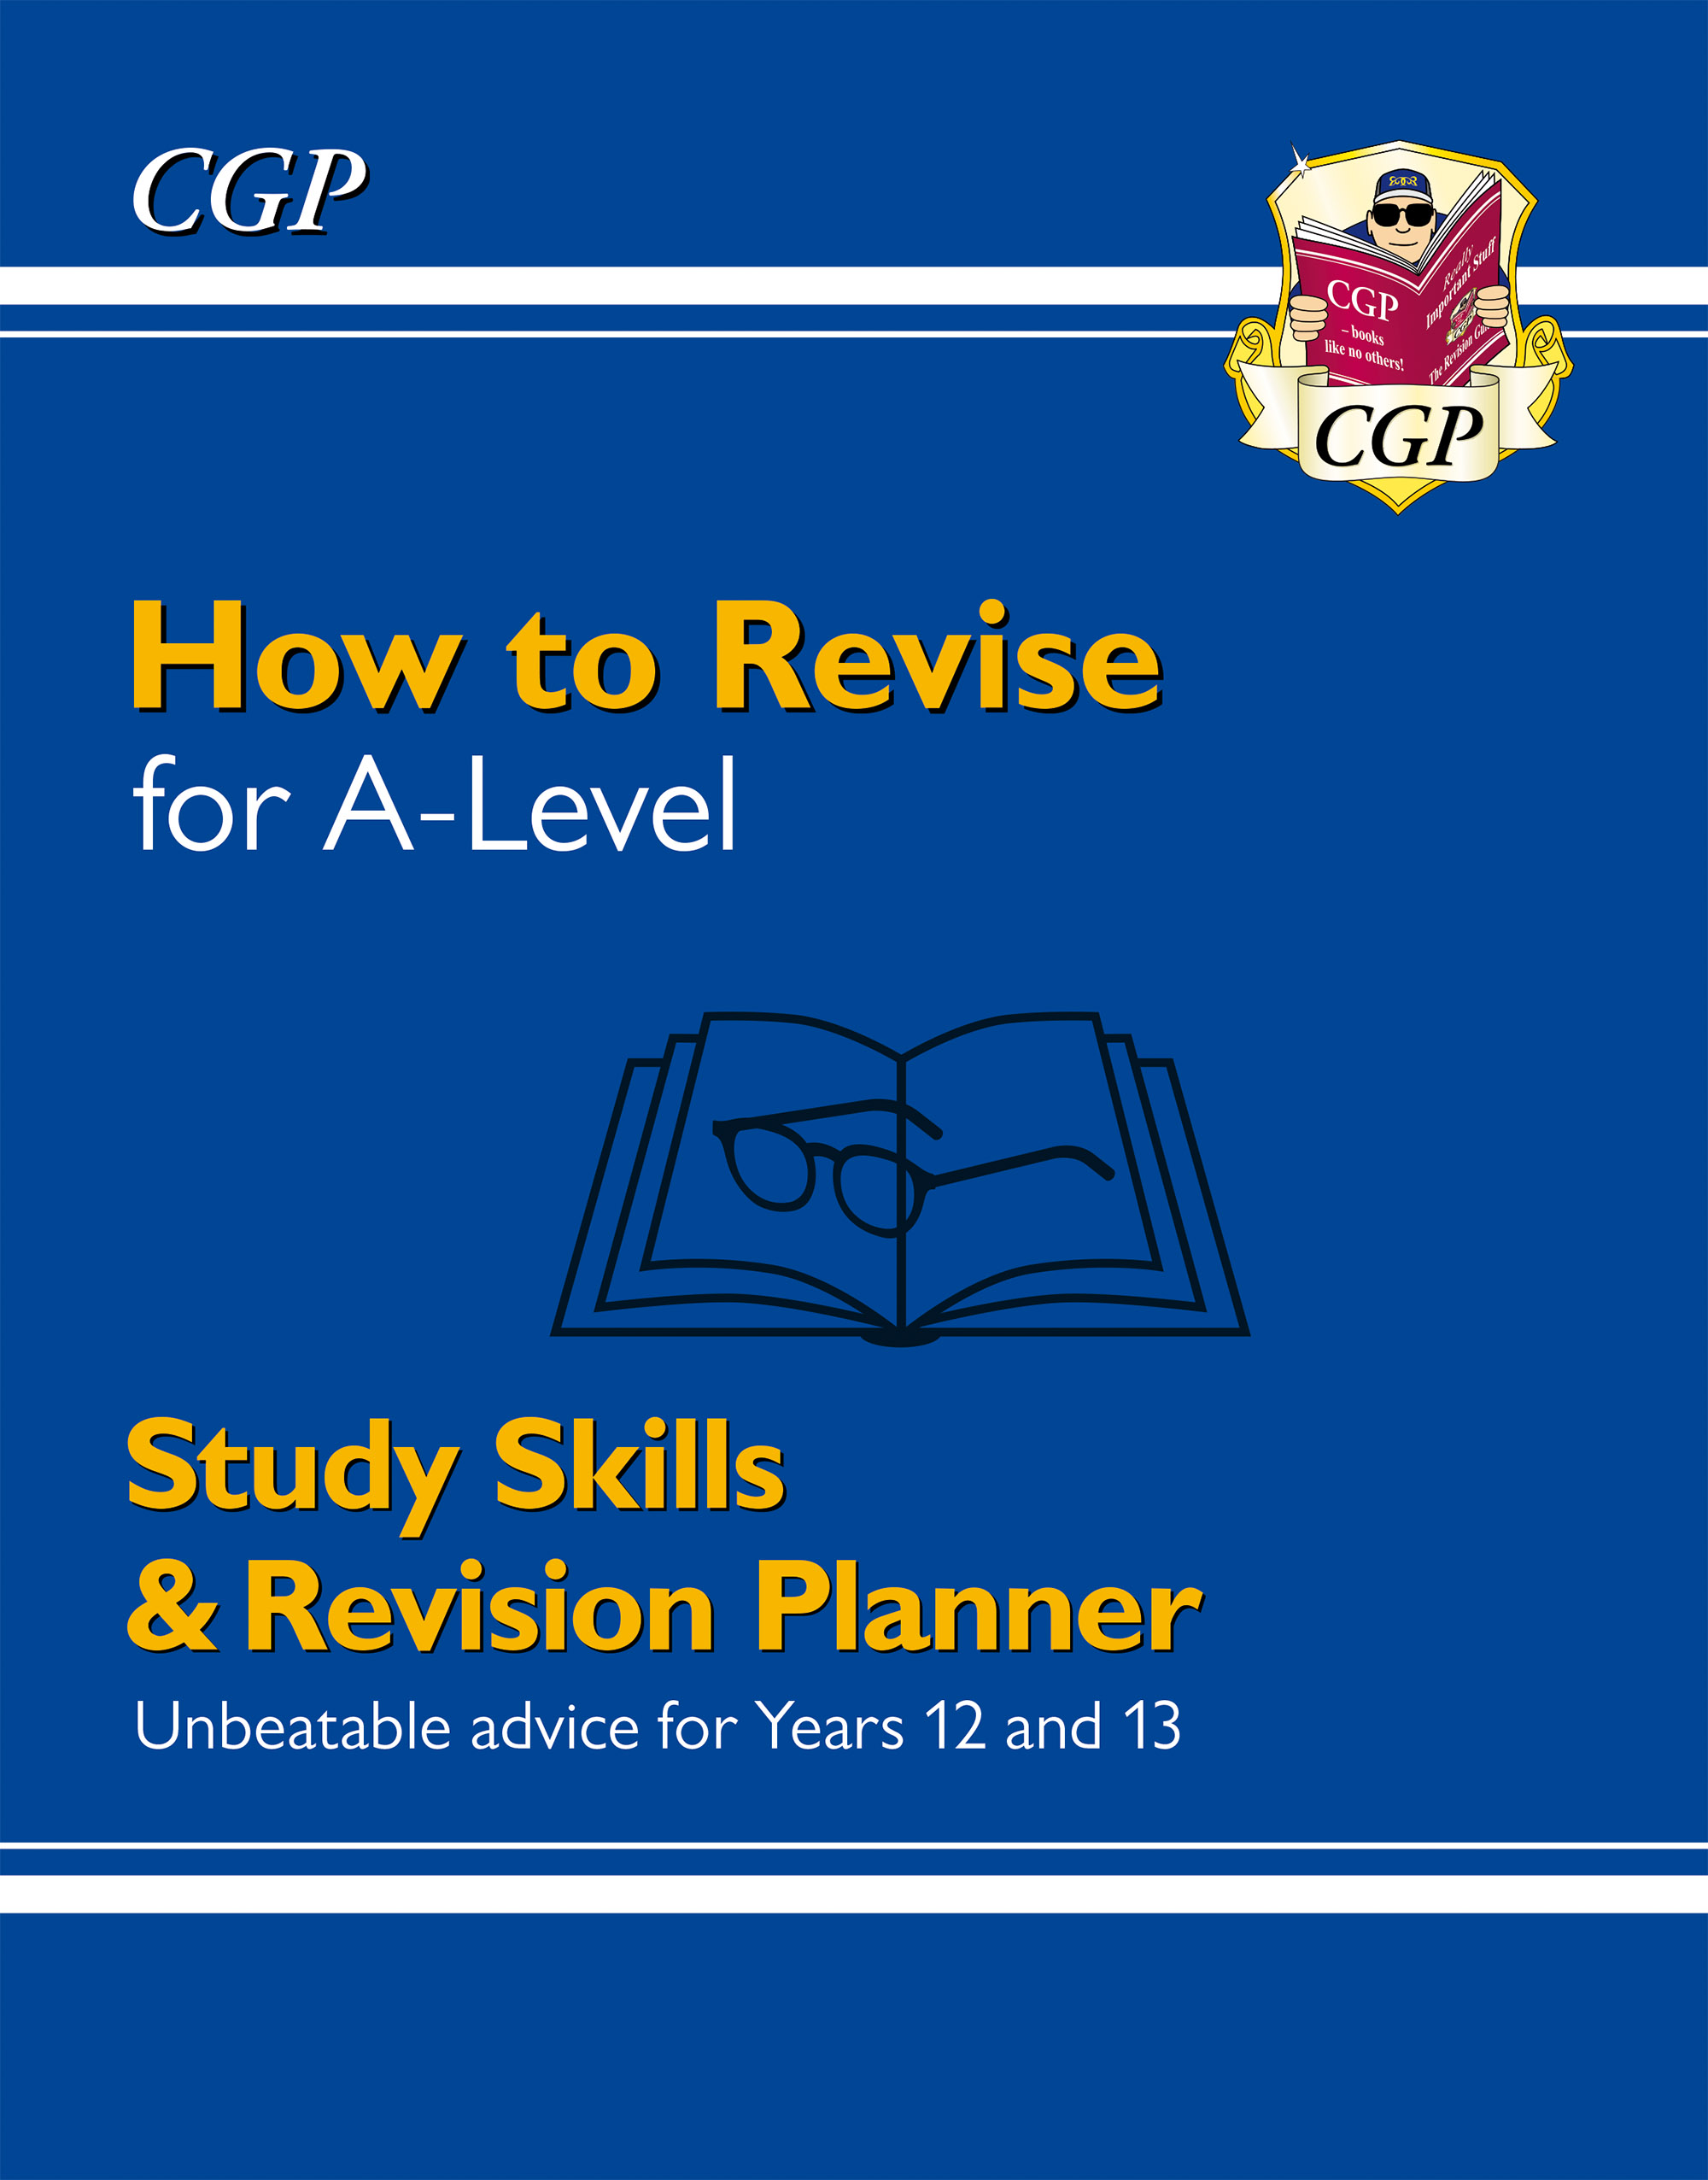 XHR71DK - How to Revise for A-Level: Study Skills & Planner